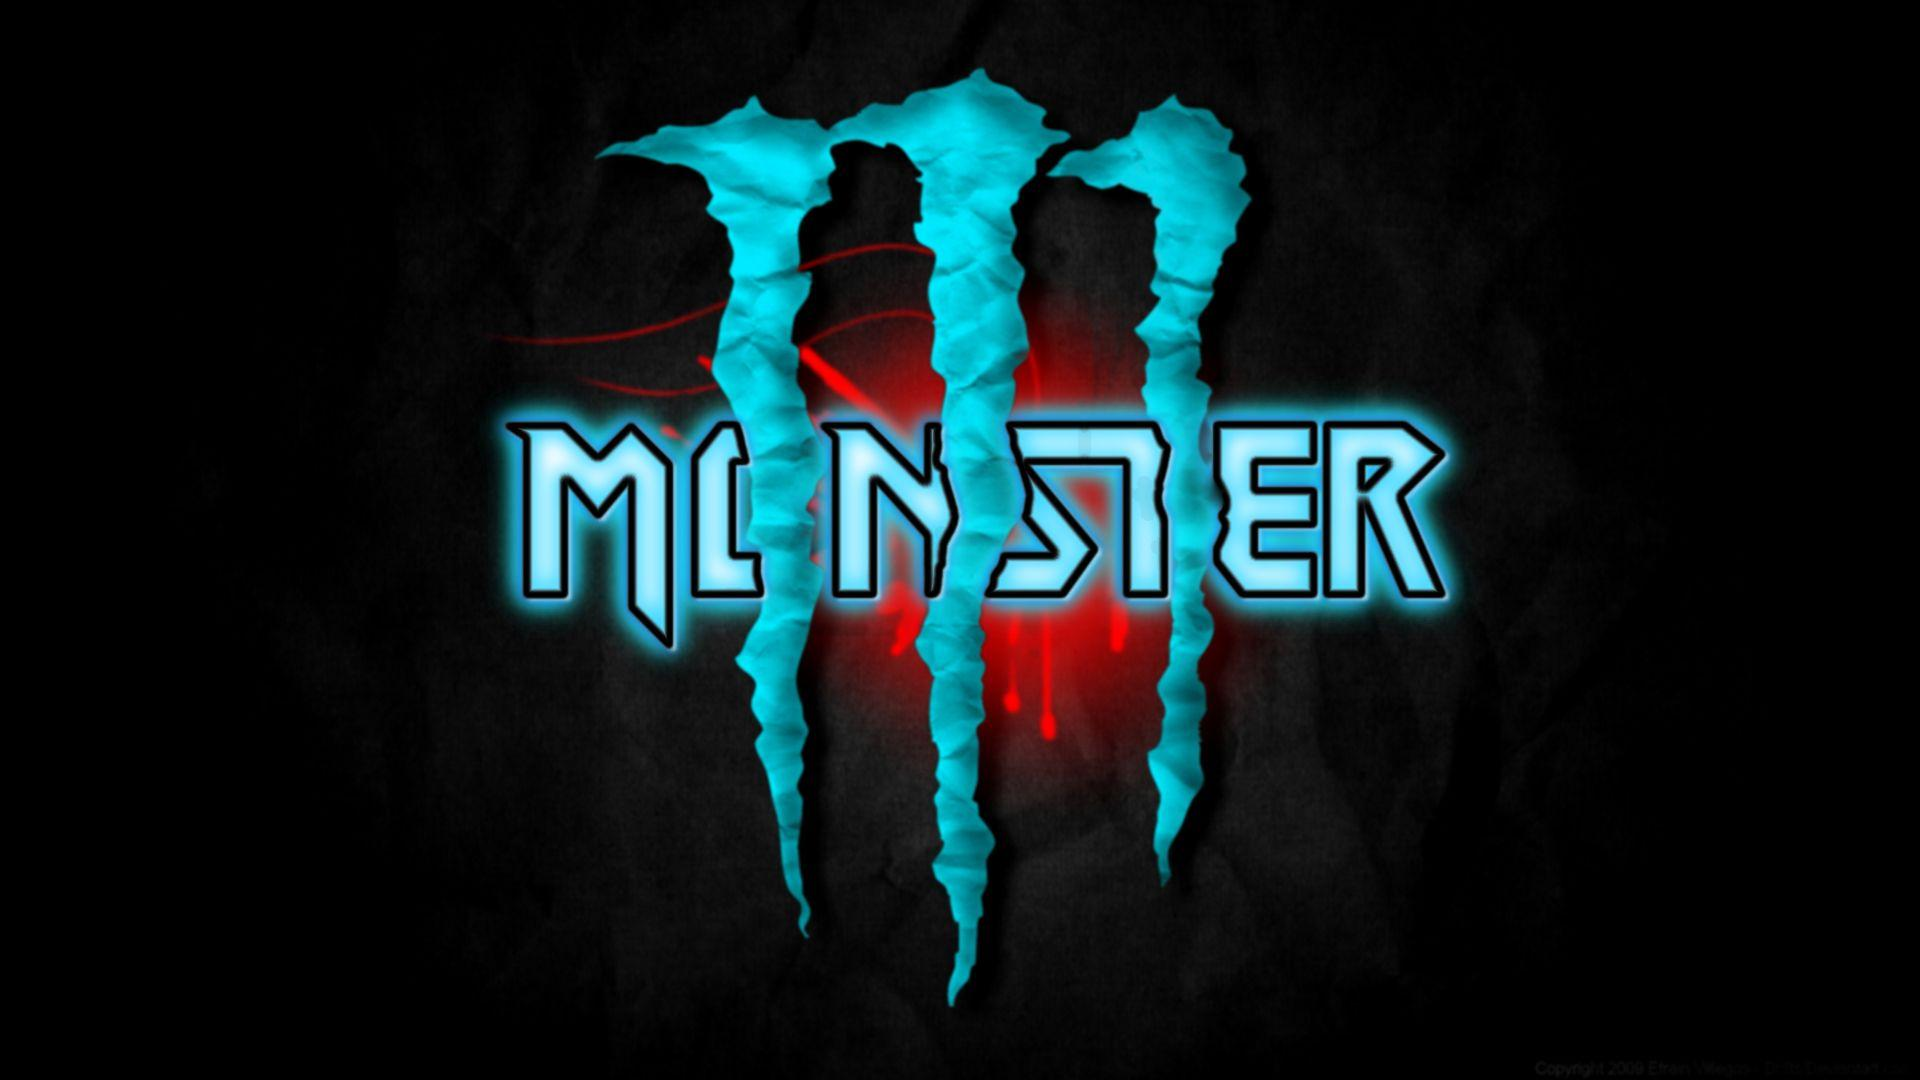 Wallpapers Collection «Monster Wallpapers»